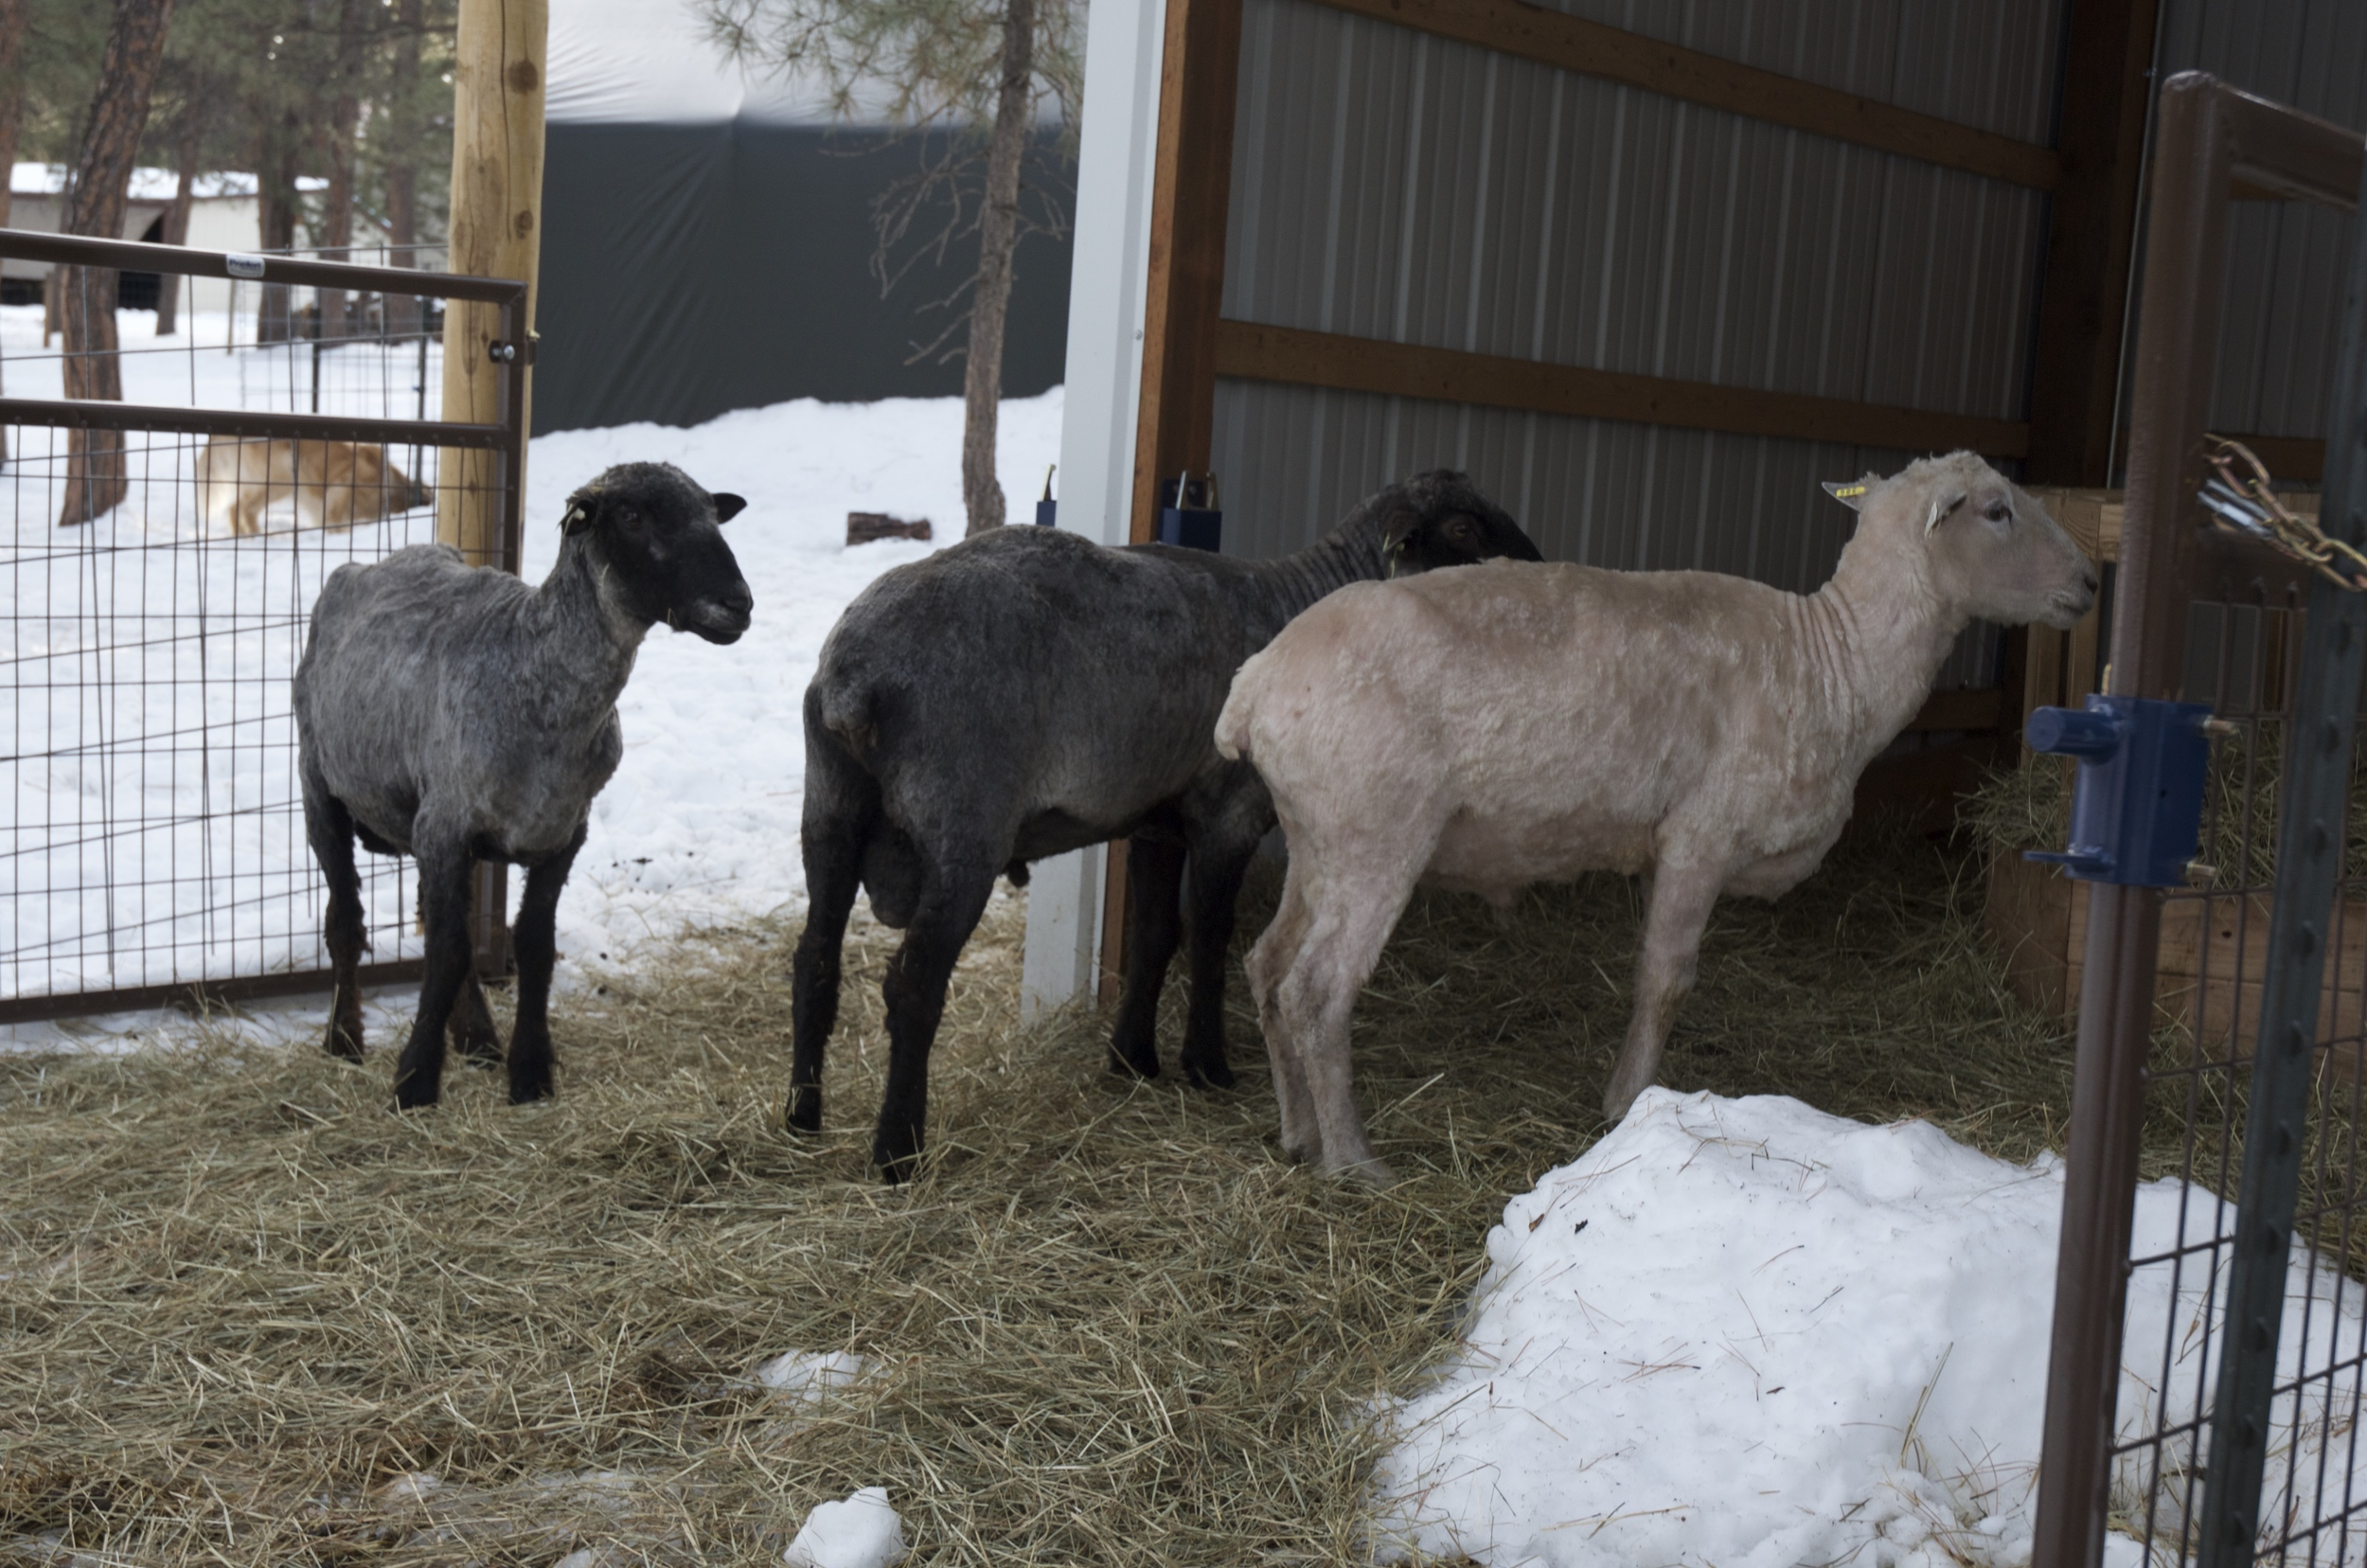 The rams, looking very put out after the fact.  You can see their beautiful color differences.